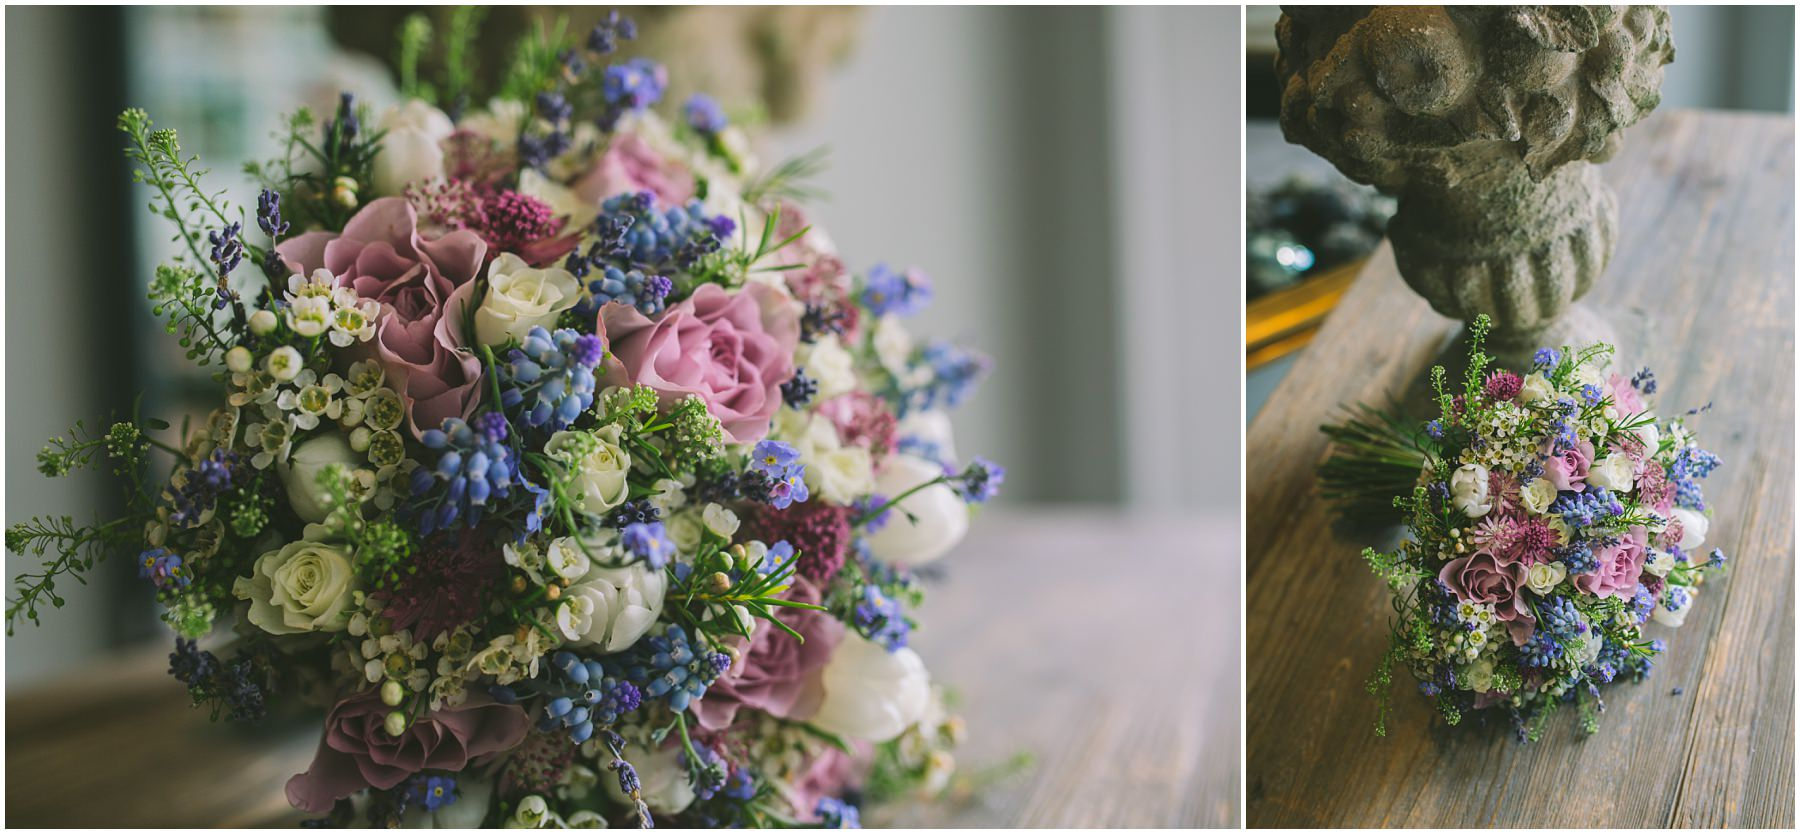 Wedding flowers by The Flower Lounge